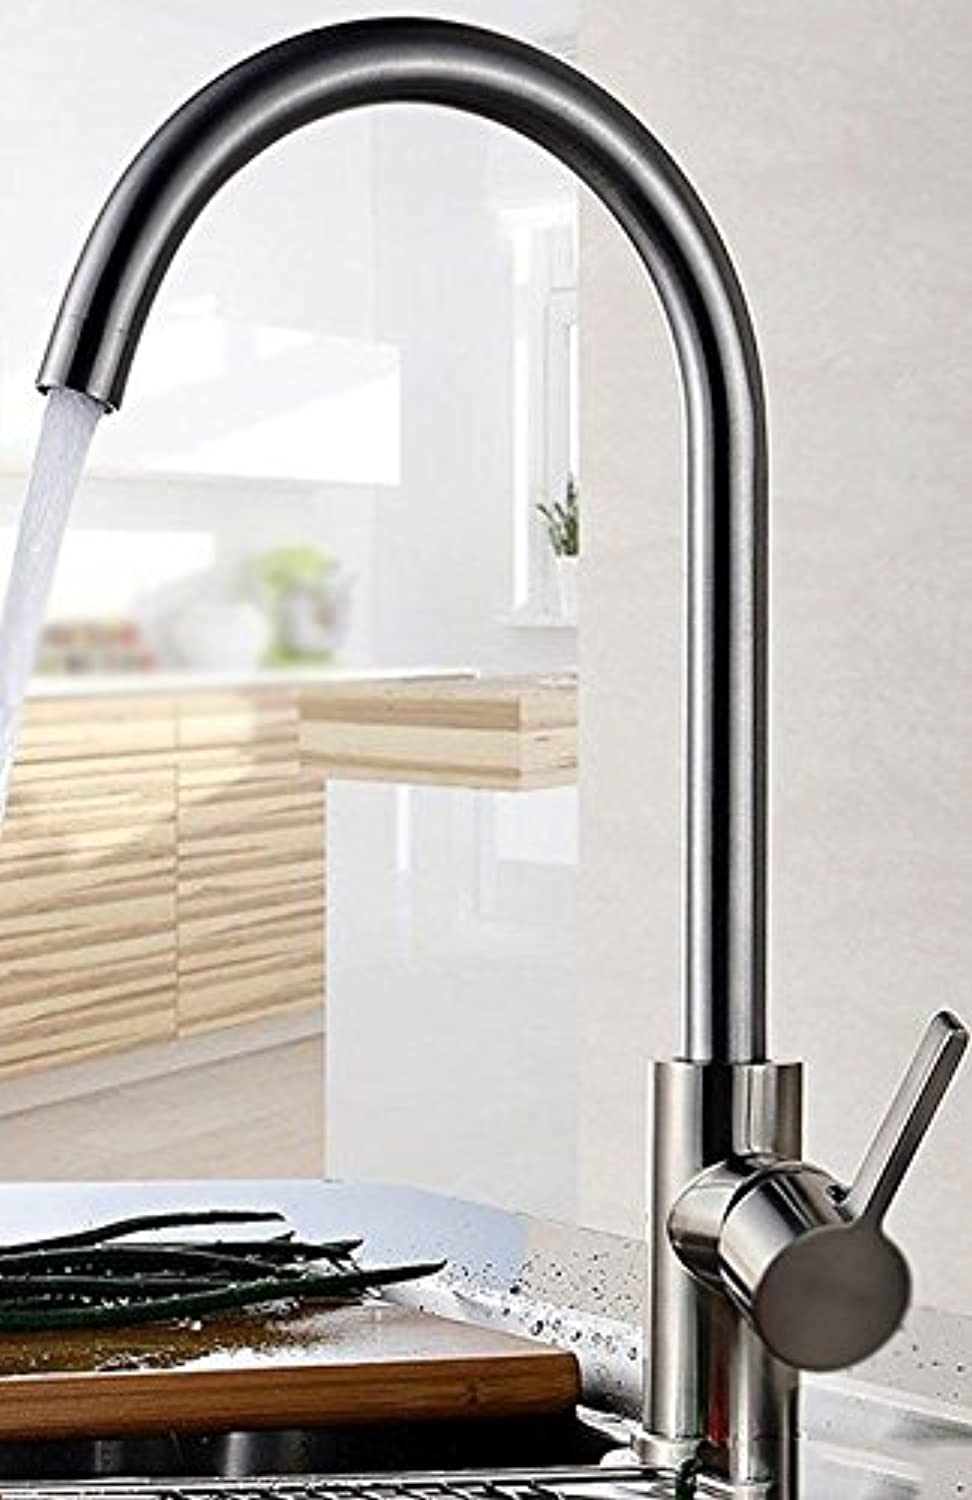 IJIAHOMIE Style of Bathroom Sink Taps, Bathroom Faucets,Waterfall Basin Sink Mixer Tap Modern Kitchen, hot and Cold, Copper, Stainless Steel, Sink, Sink, G